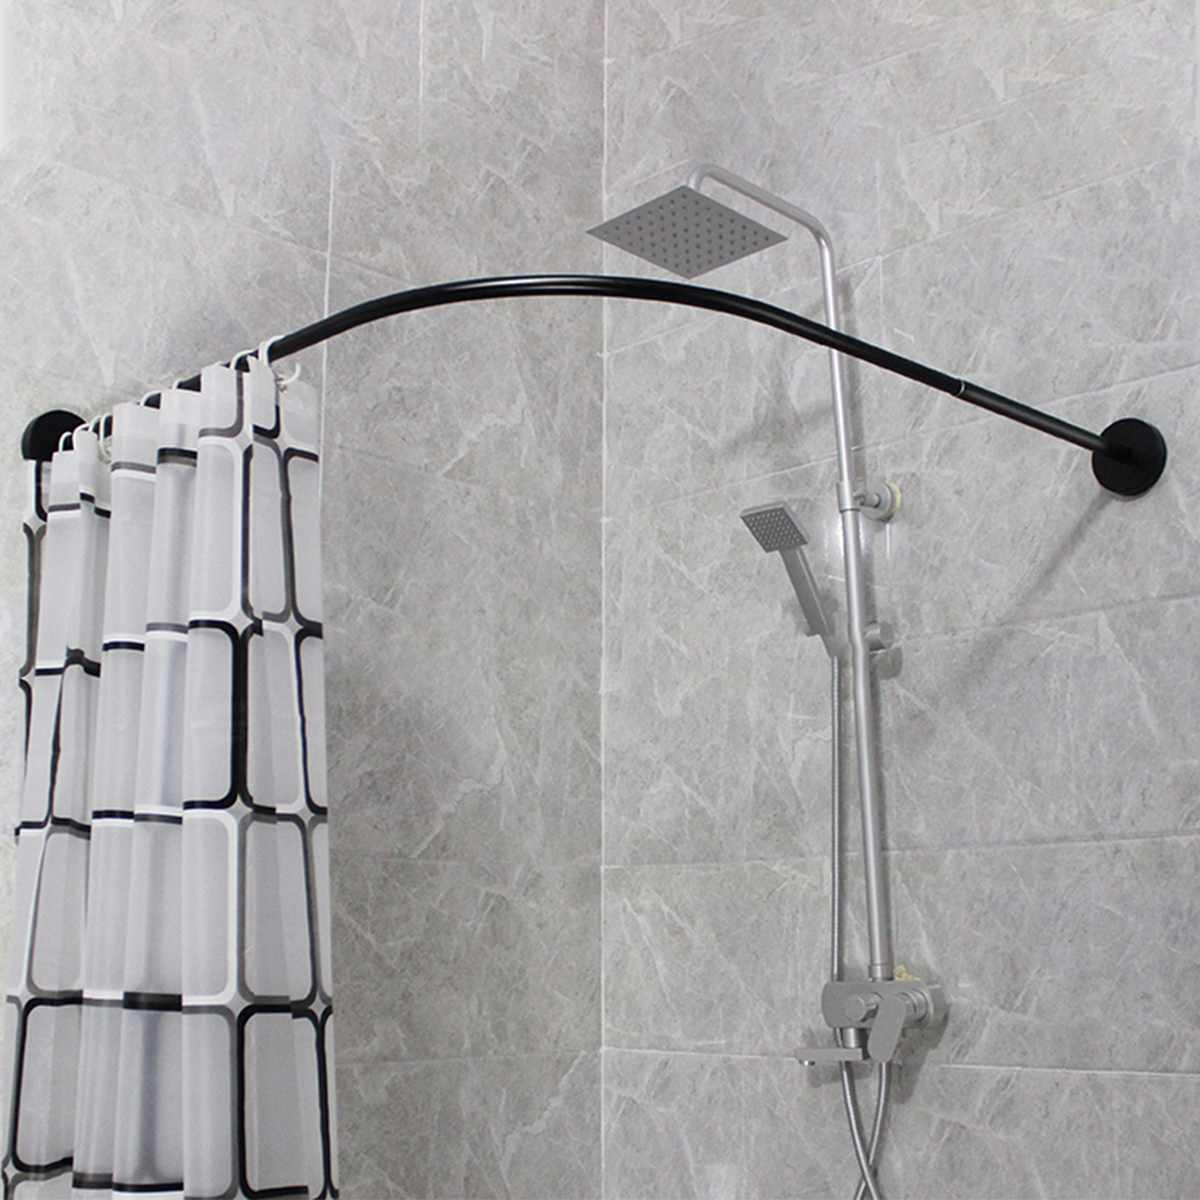 2019 Gold Stainless L Shaped Shower Curtain Poles Punch Free